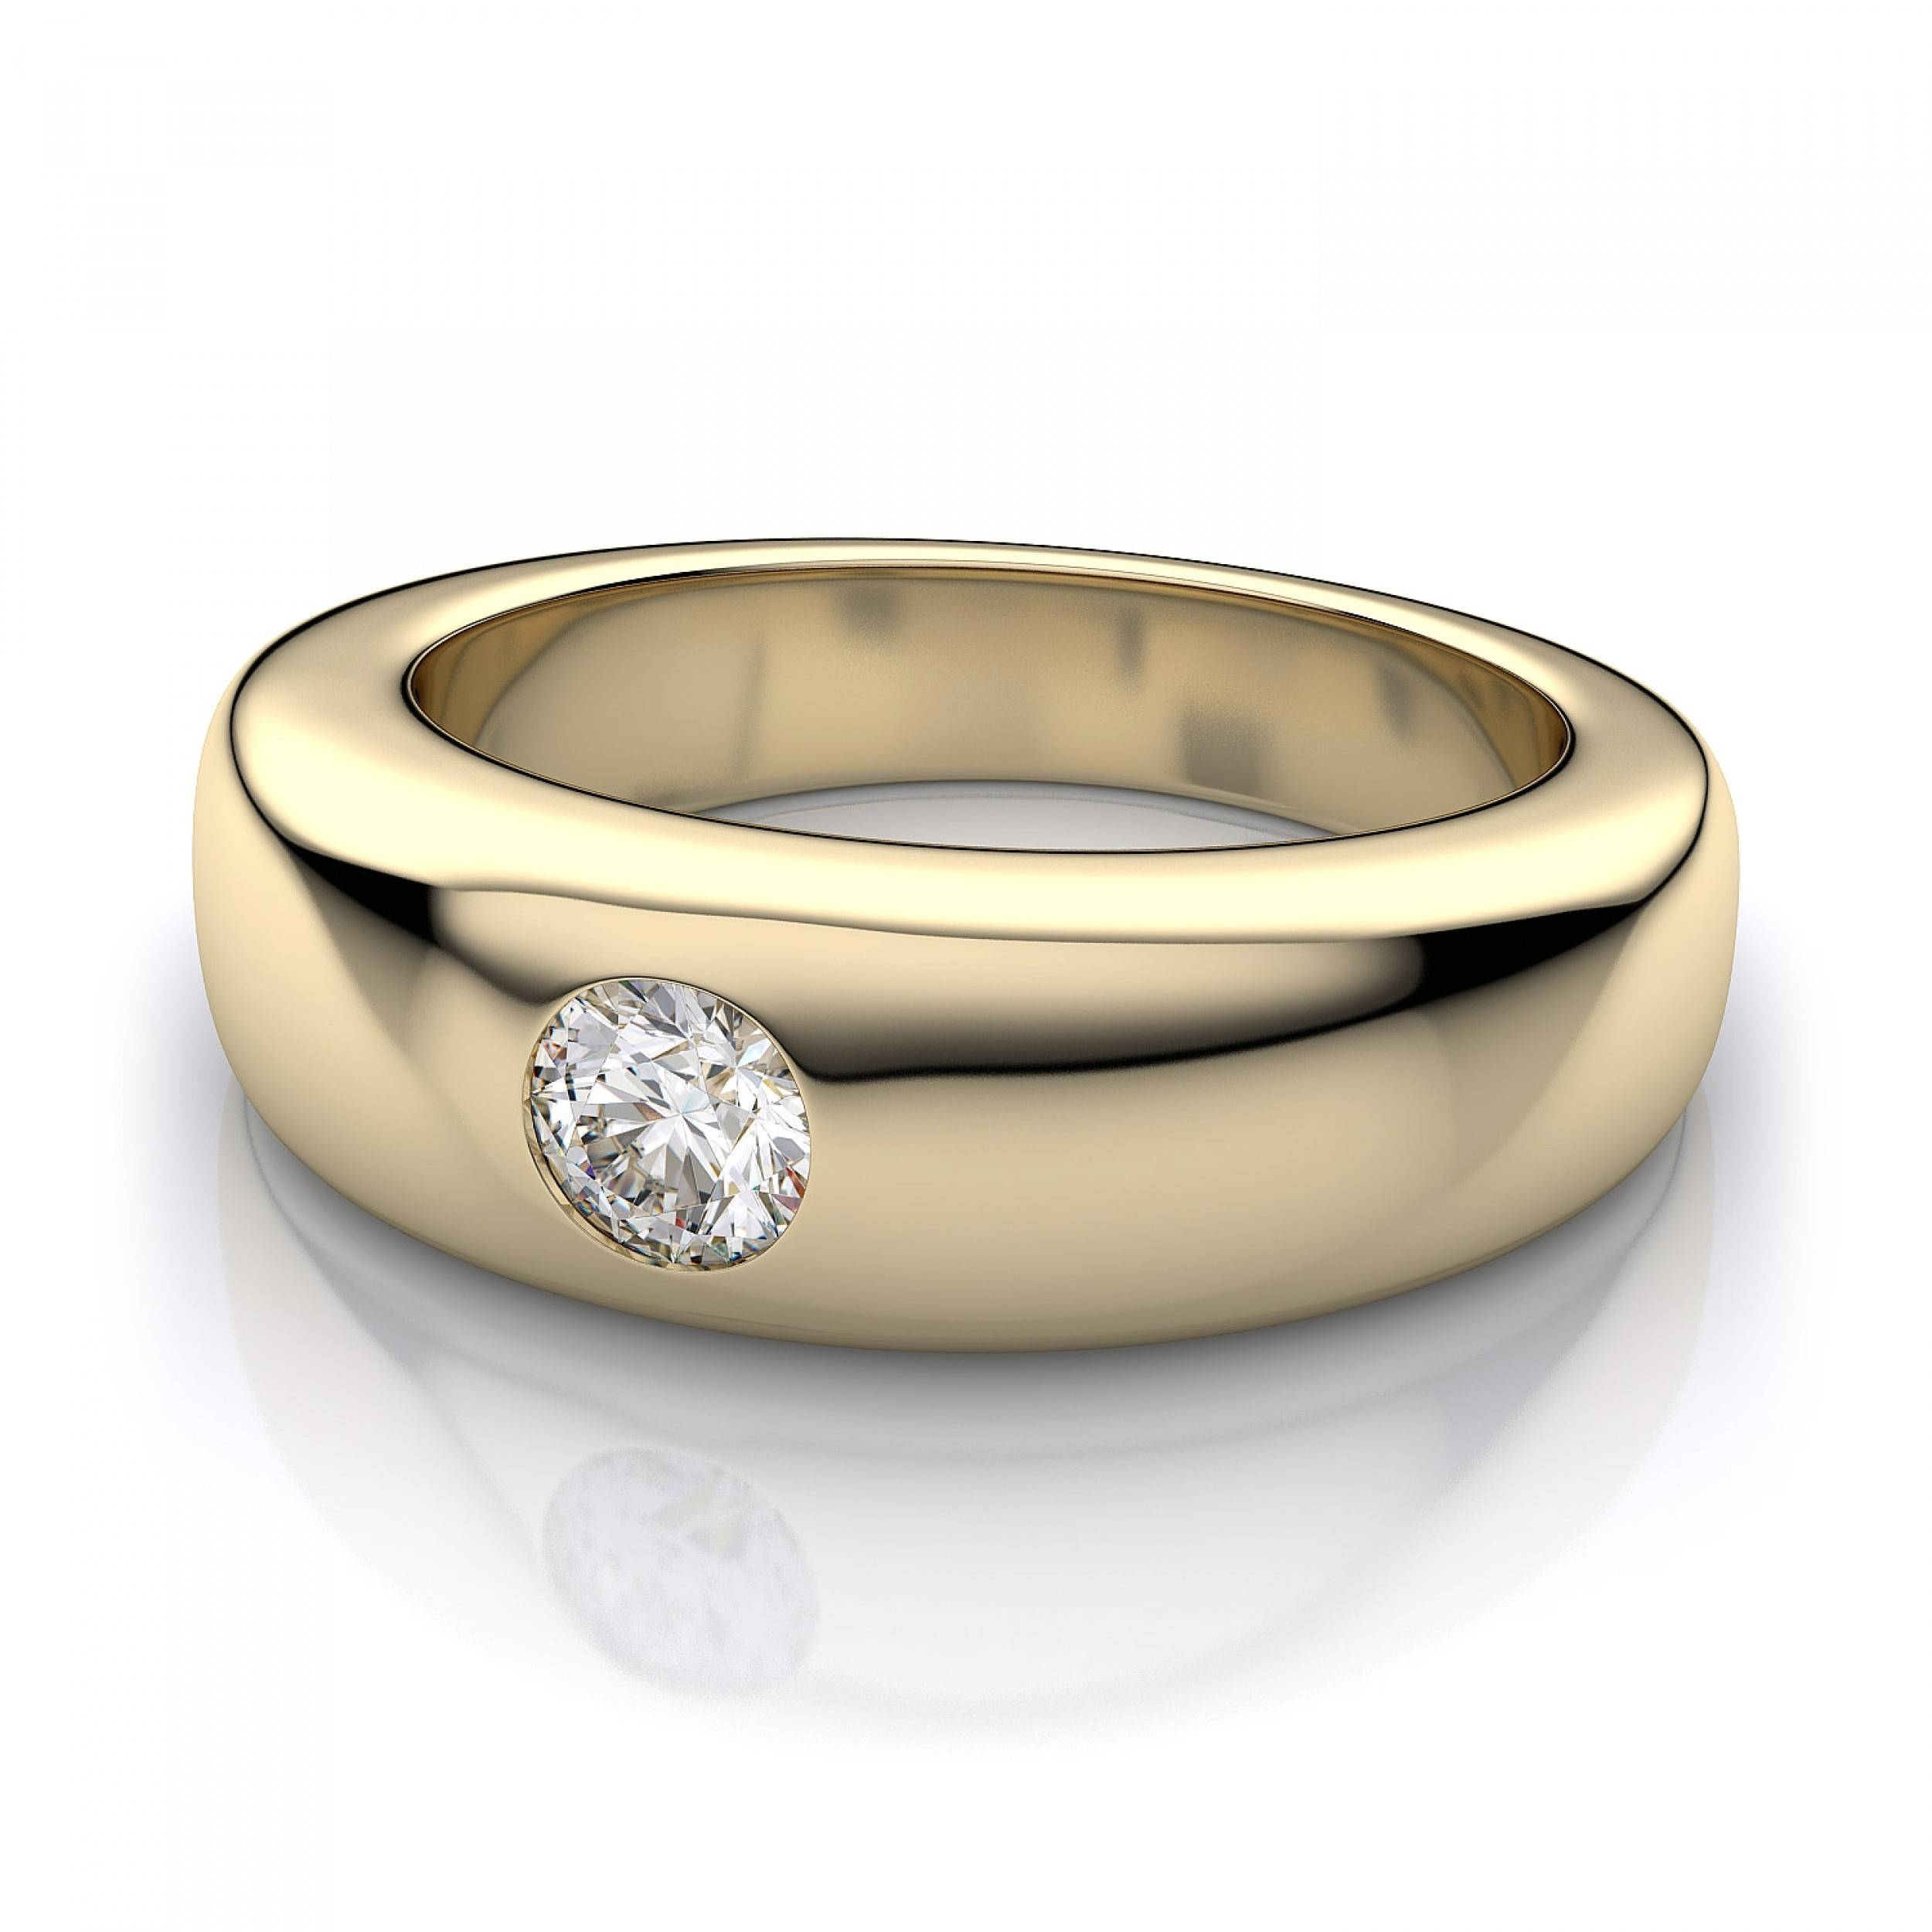 2 Ct Men's Dome Burnished Diamond Band In 18k Yellow Gold With Regard To Men's Yellow Gold Wedding Bands With Diamonds (View 4 of 15)